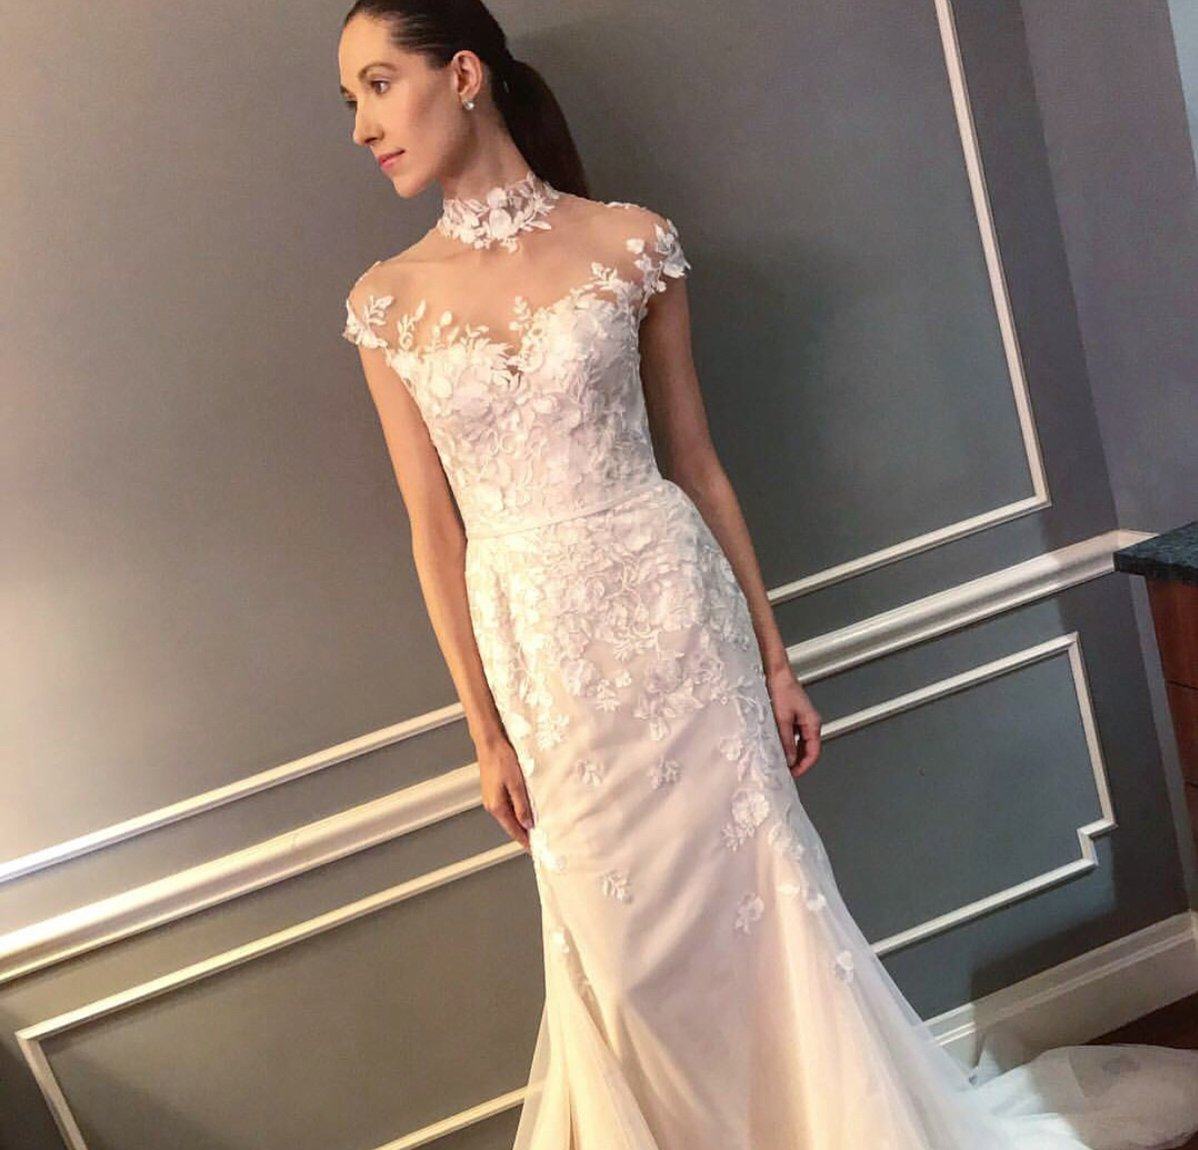 Wrapping #bridalfashionweek with the most stunning collections hot off the runway! #nybfw #bridalgown #bridalfashion #bridesofaustin https://t.co/2cOBA6cFr2